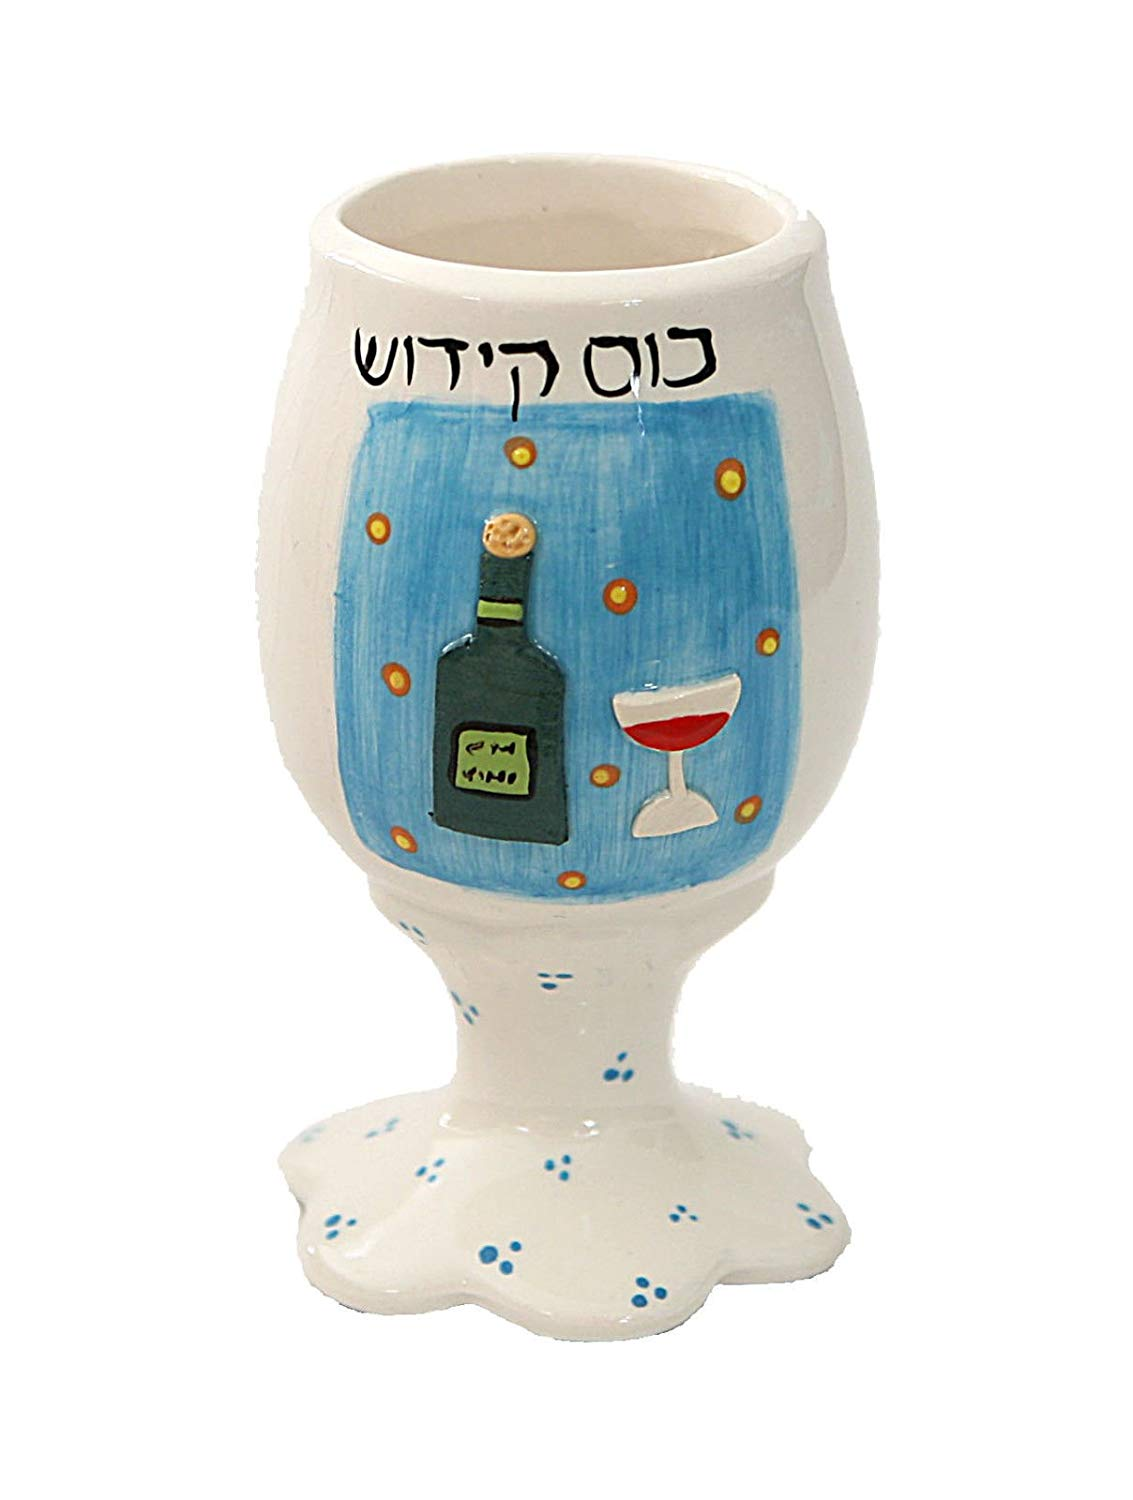 """Jewish, Shabbat Kiddush Cup/Goblet. Beautiful Ceramic Hand Crafted & Hand Painted In ISRAEL By The Artist RACHELI From Naan. Wine Bottle and Kiddush Cup Design. """"Bore Pri Hagefen"""" (The Creator Of The Fruit Of The Vine) Blessing In Hebrew. Cup Size: 5.25"""". Great Gift For: Bar Mitzvah Bat Mitzvah"""